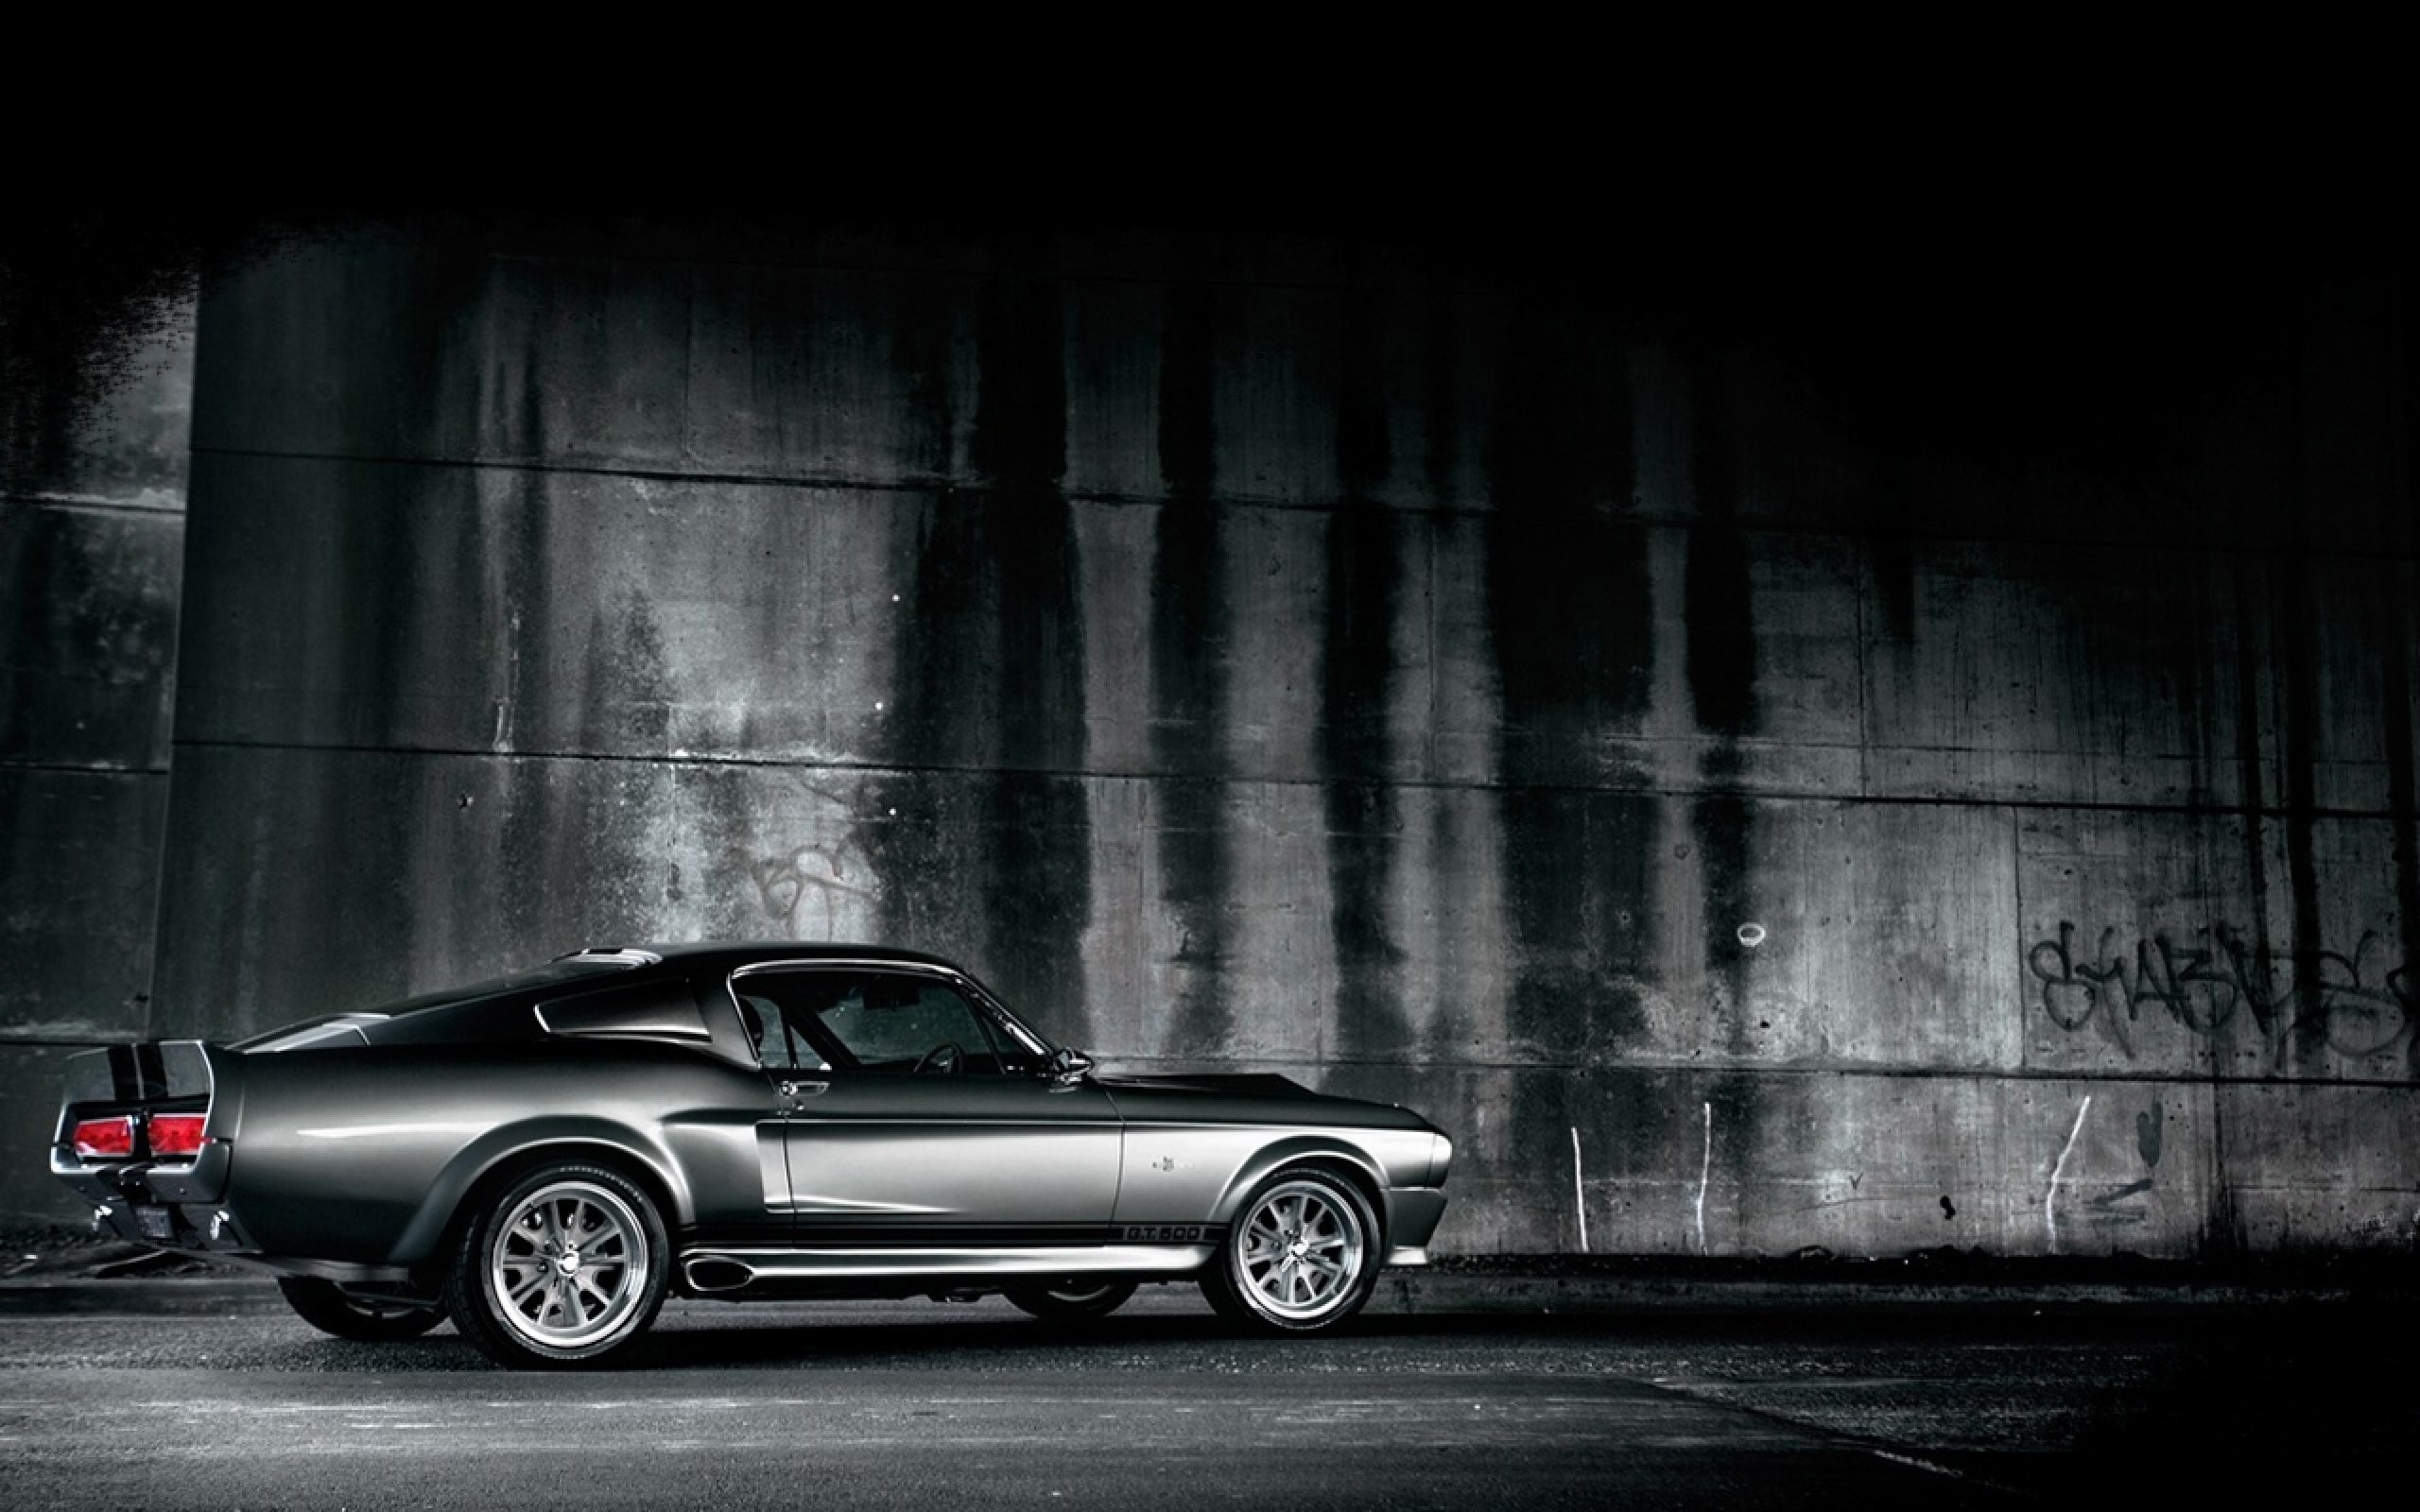 Res: 2560x1600, Shelby cobra gt500 wallpapers hd.